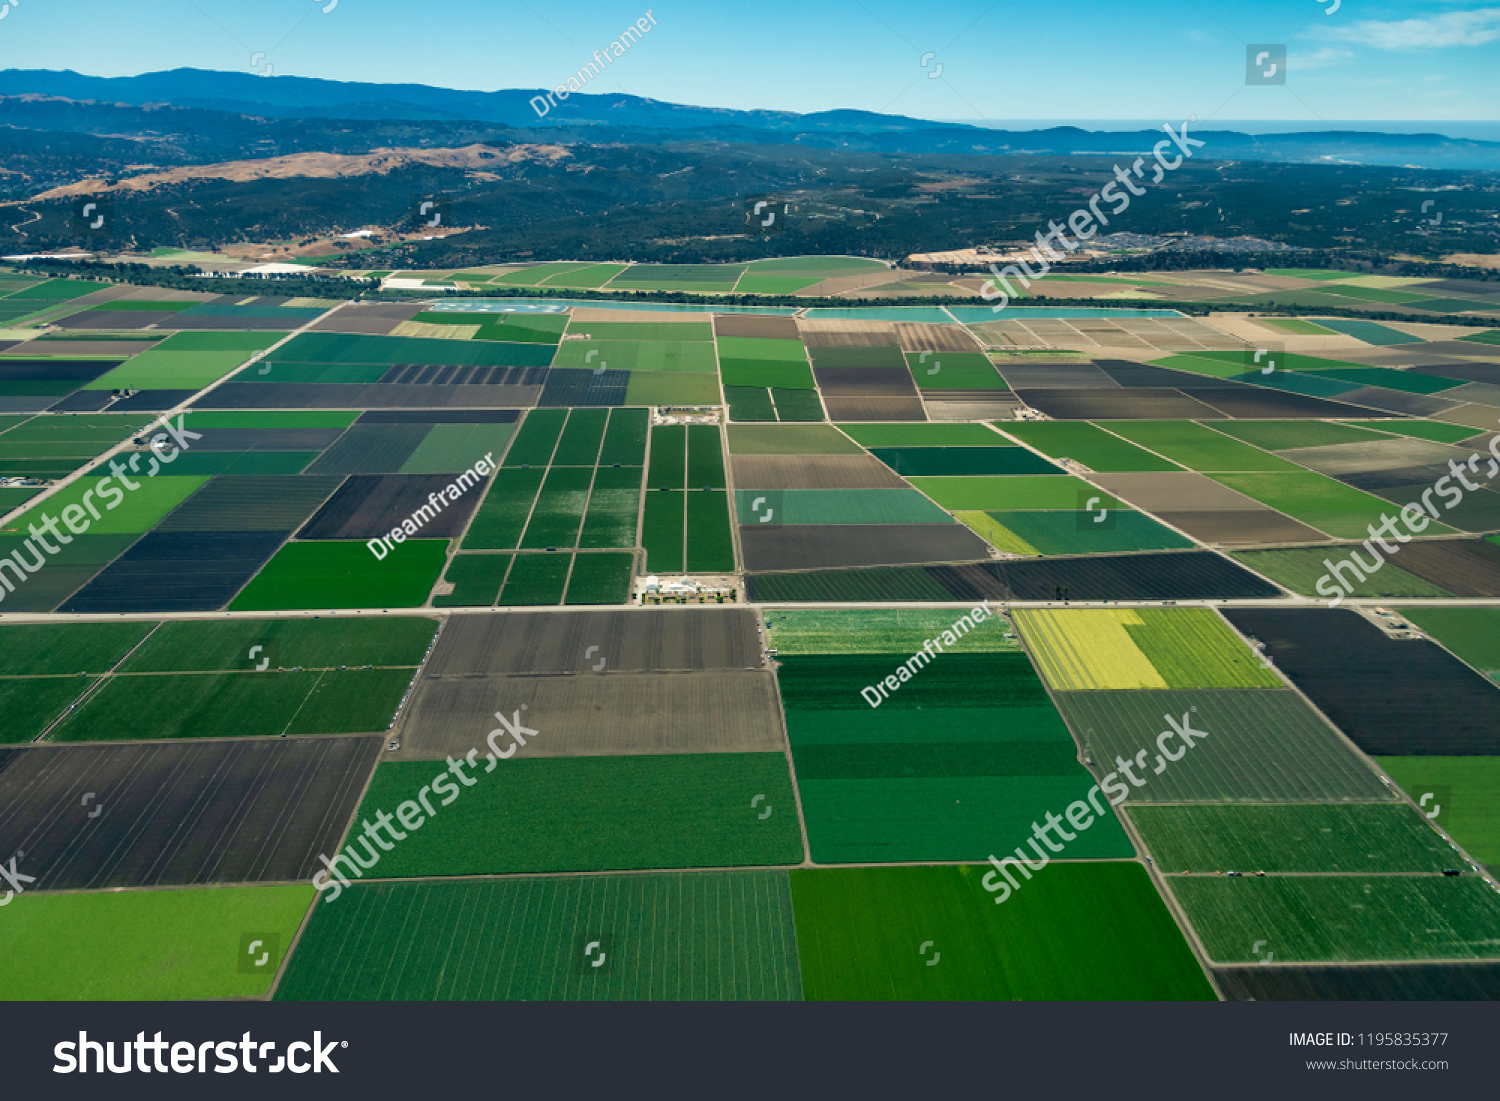 Pacific coast of California with farmland close to the cities of Salinas and Monterey. The picture was taken in the early July.